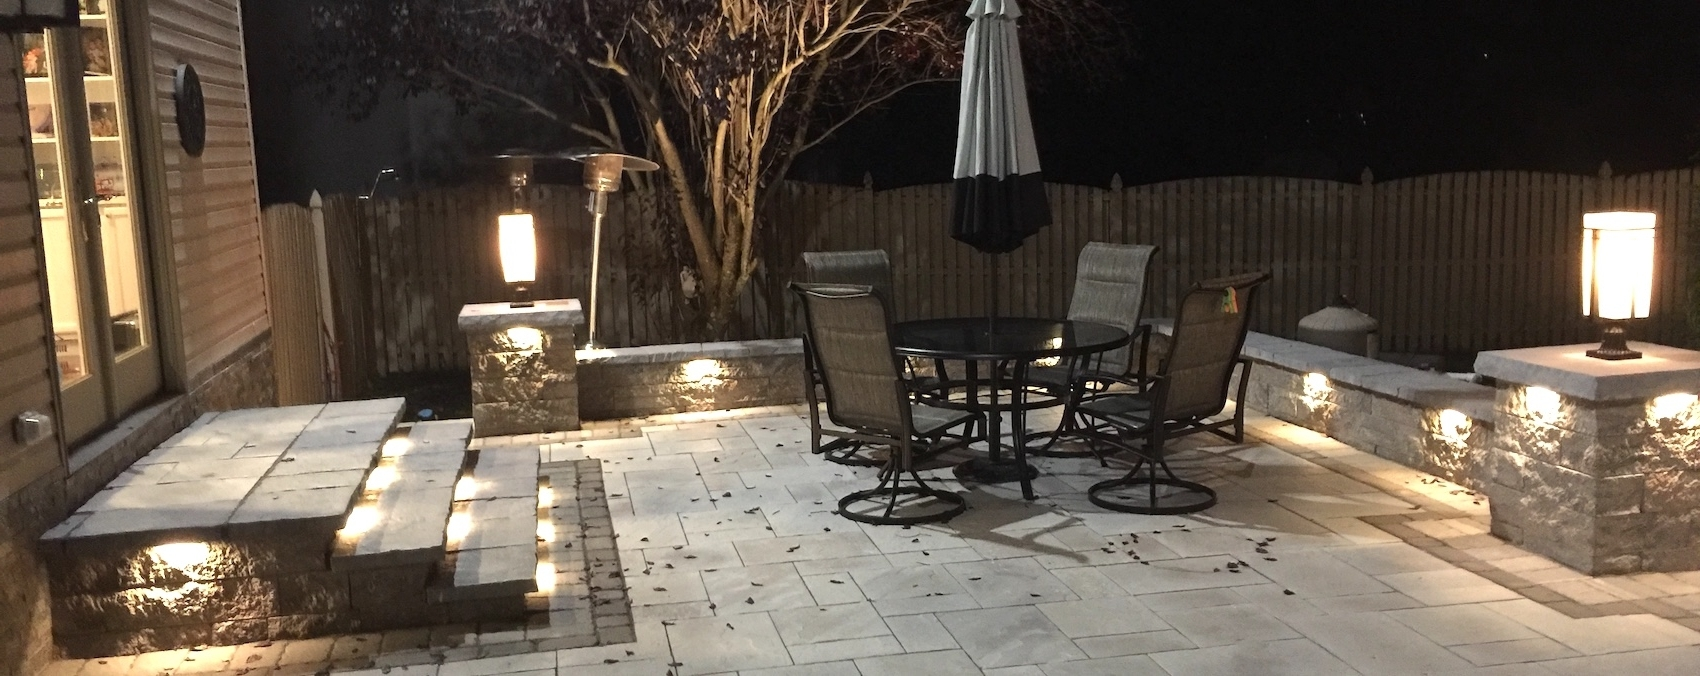 Hardscape Lighting For Patios, Pools For Outdoor Low Voltage Lanterns (View 15 of 20)